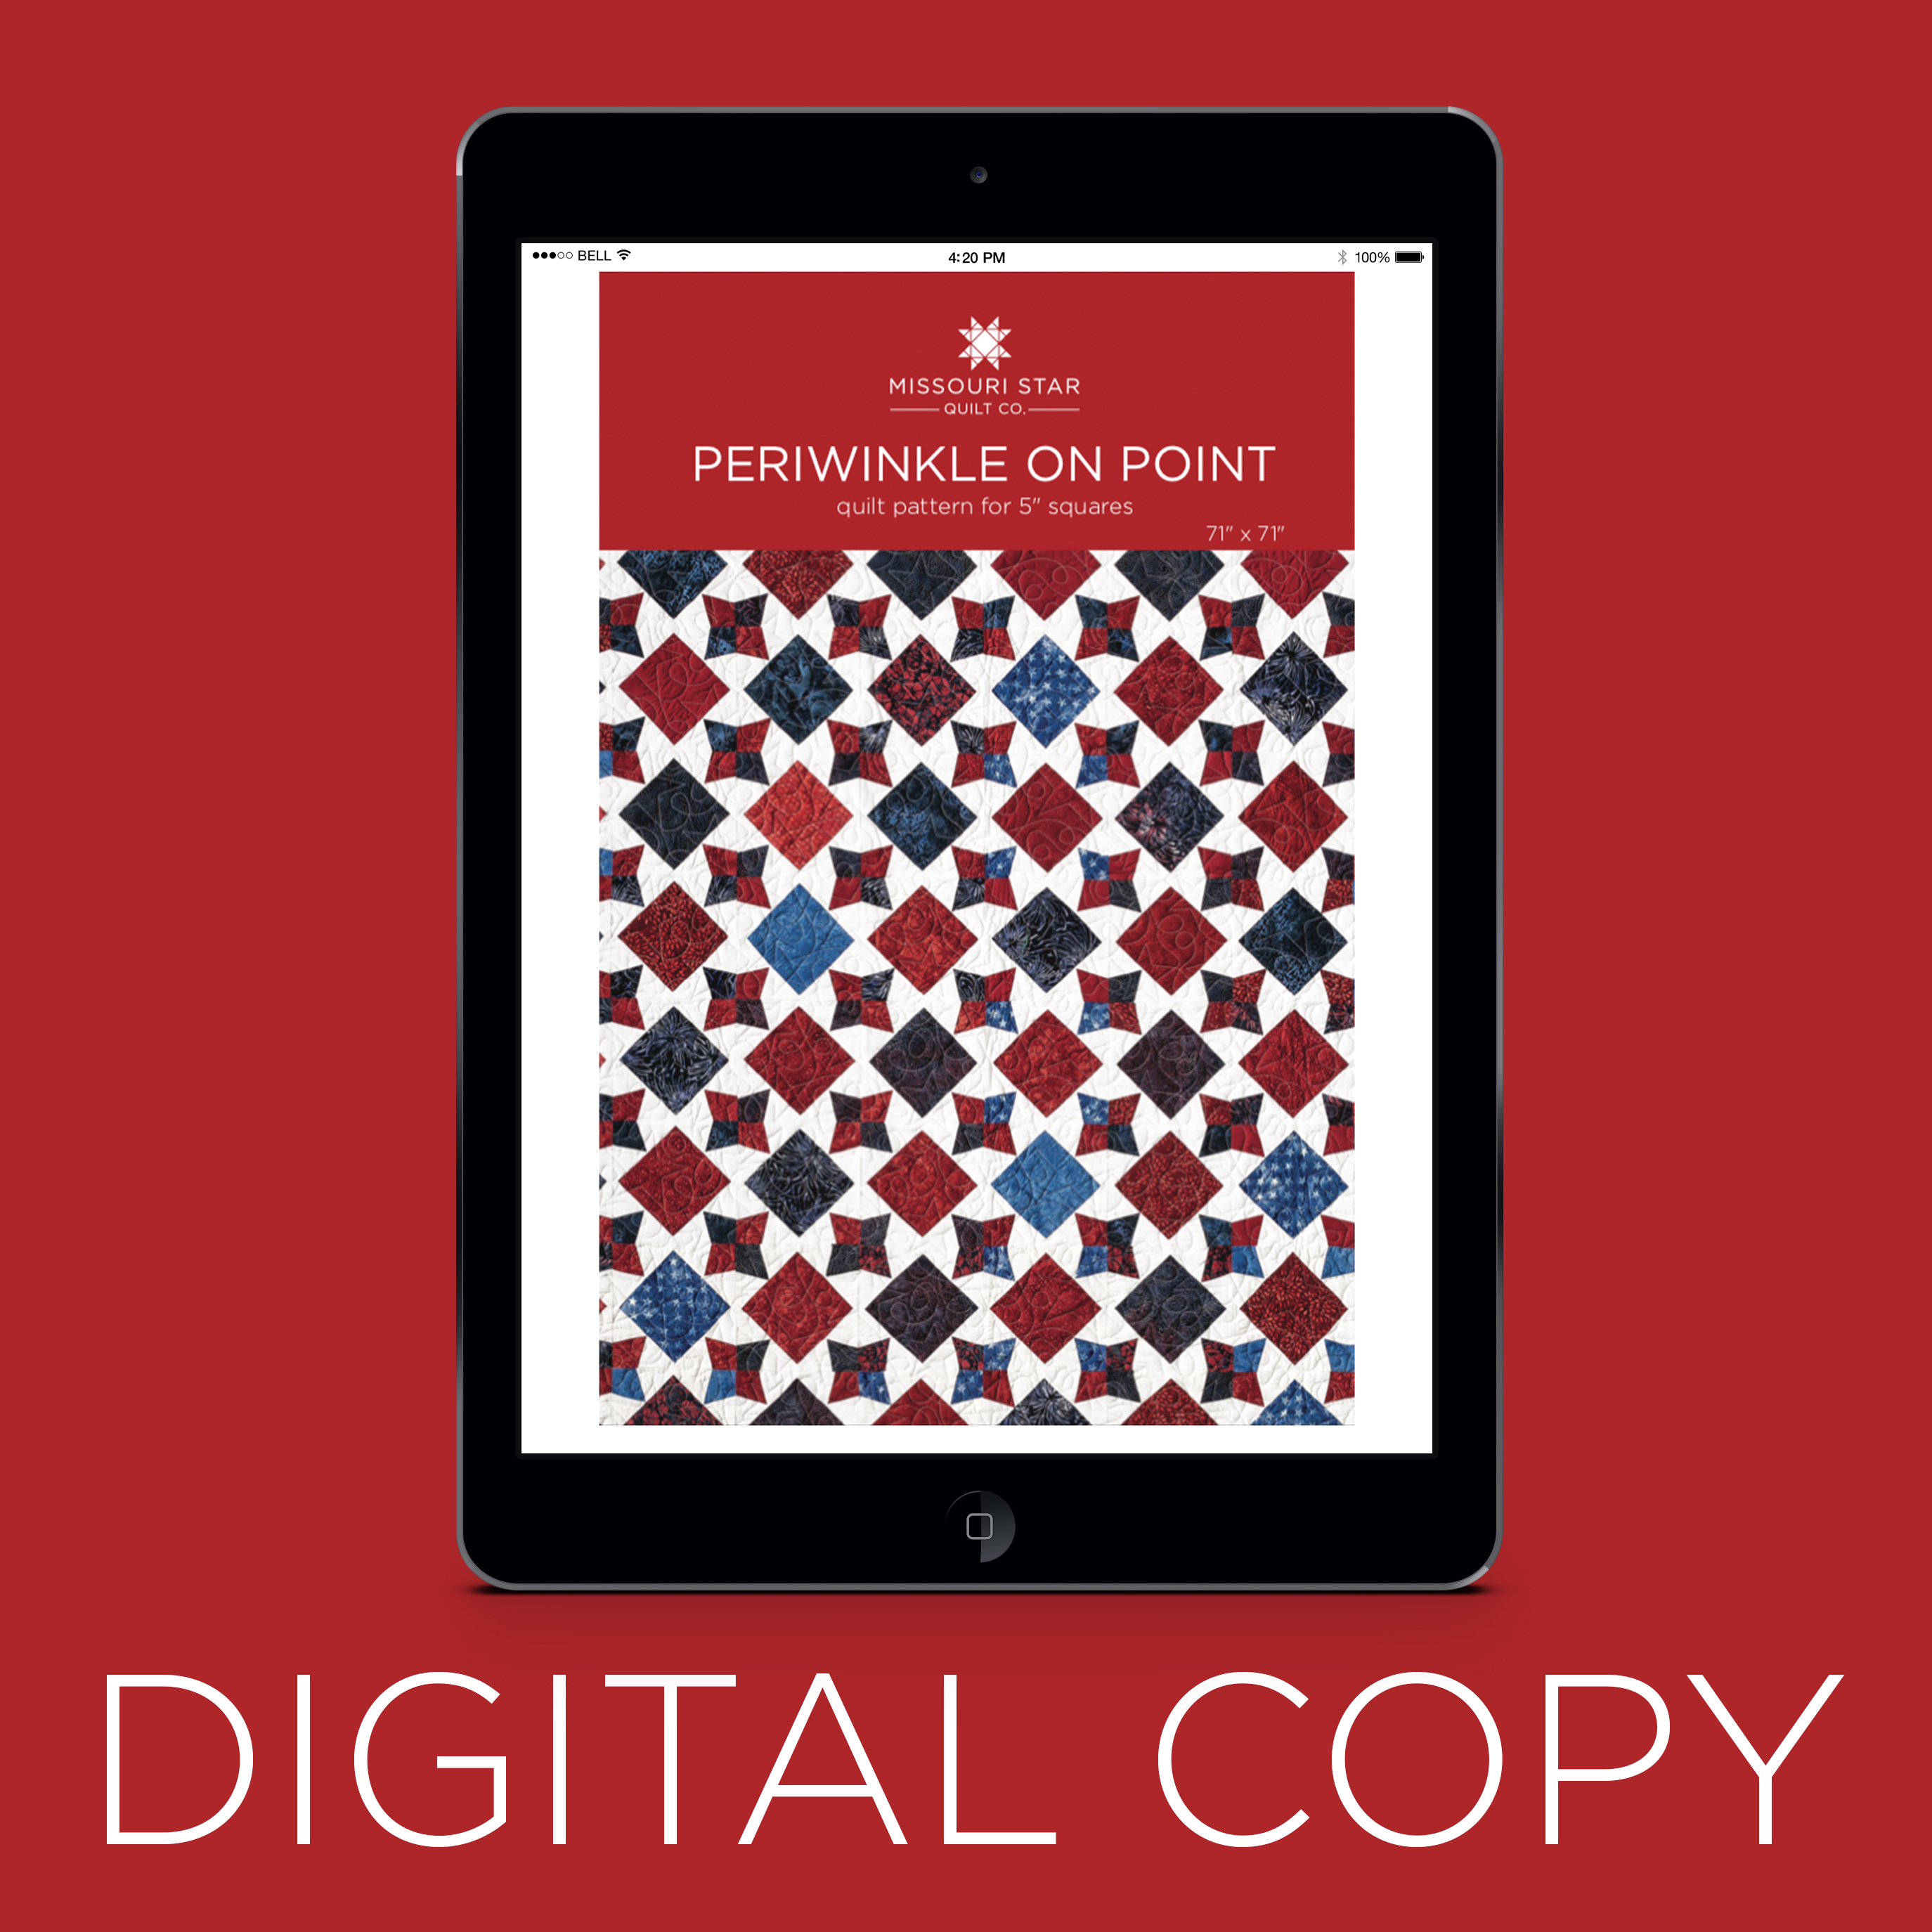 dd106d1b84 Digital Download - Periwinkle on Point Quilt Pattern by Missouri Star